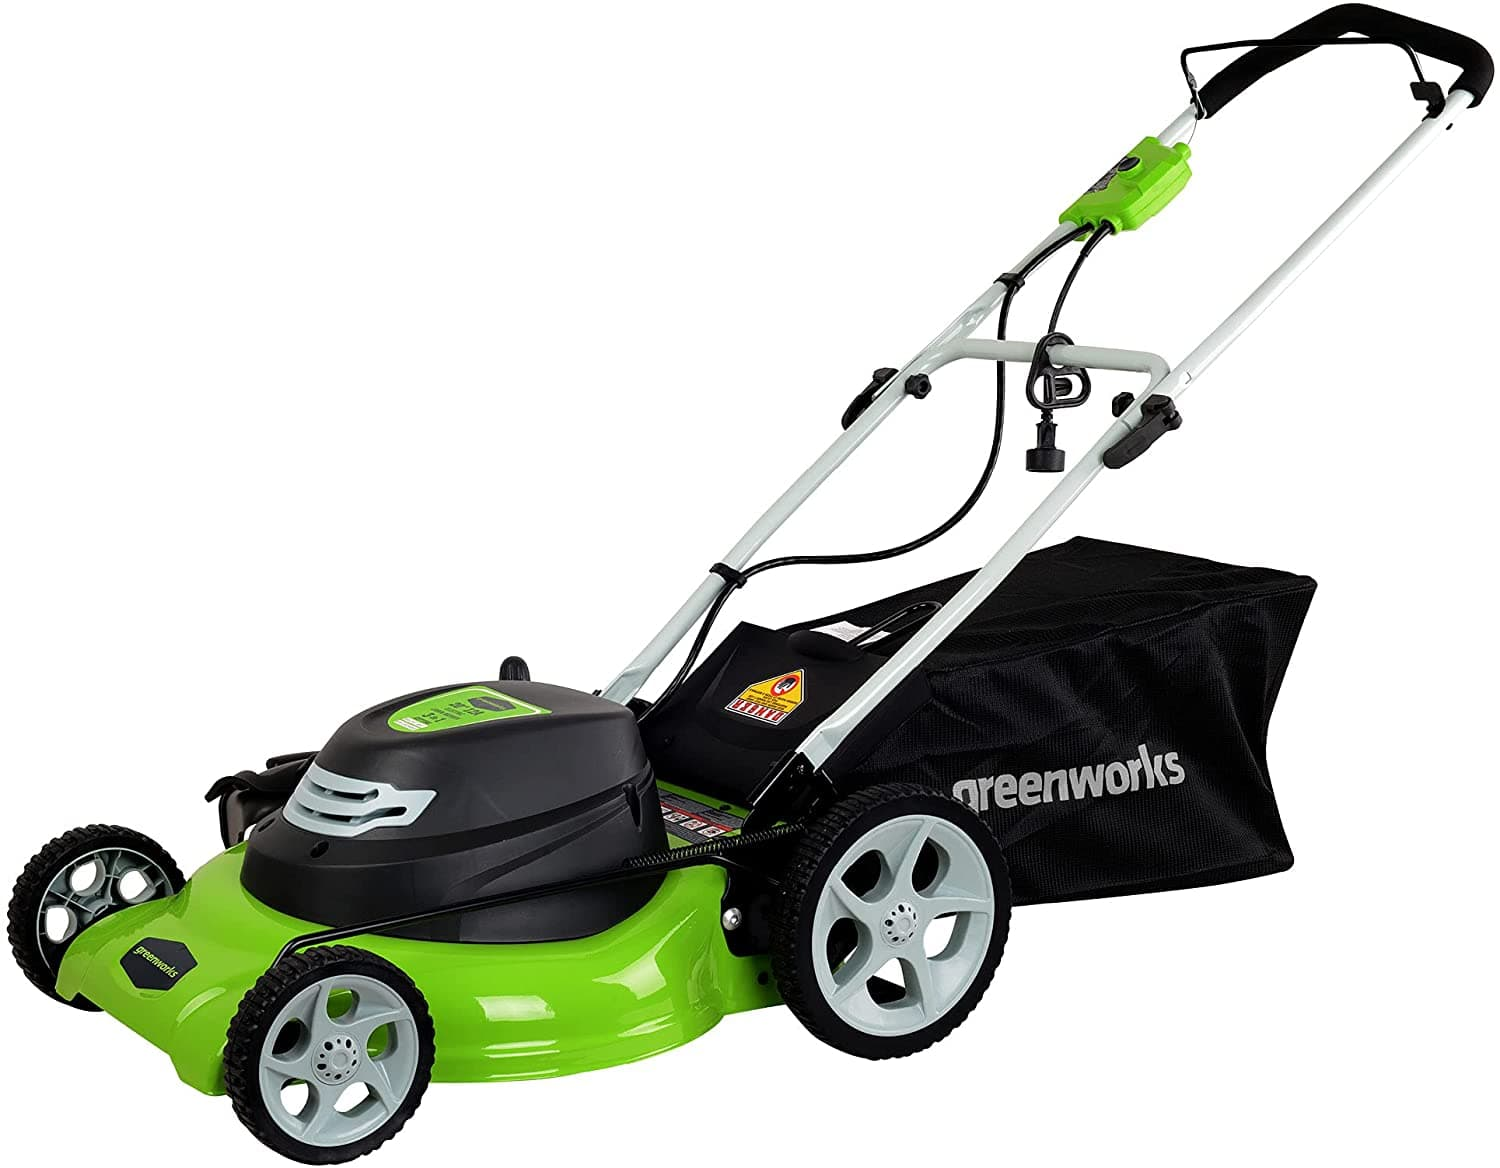 """20"""" Greenworks 12 Amp 3-in-1 Electric Corded Lawn Mower $95 + Free Shipping w/ Prime"""